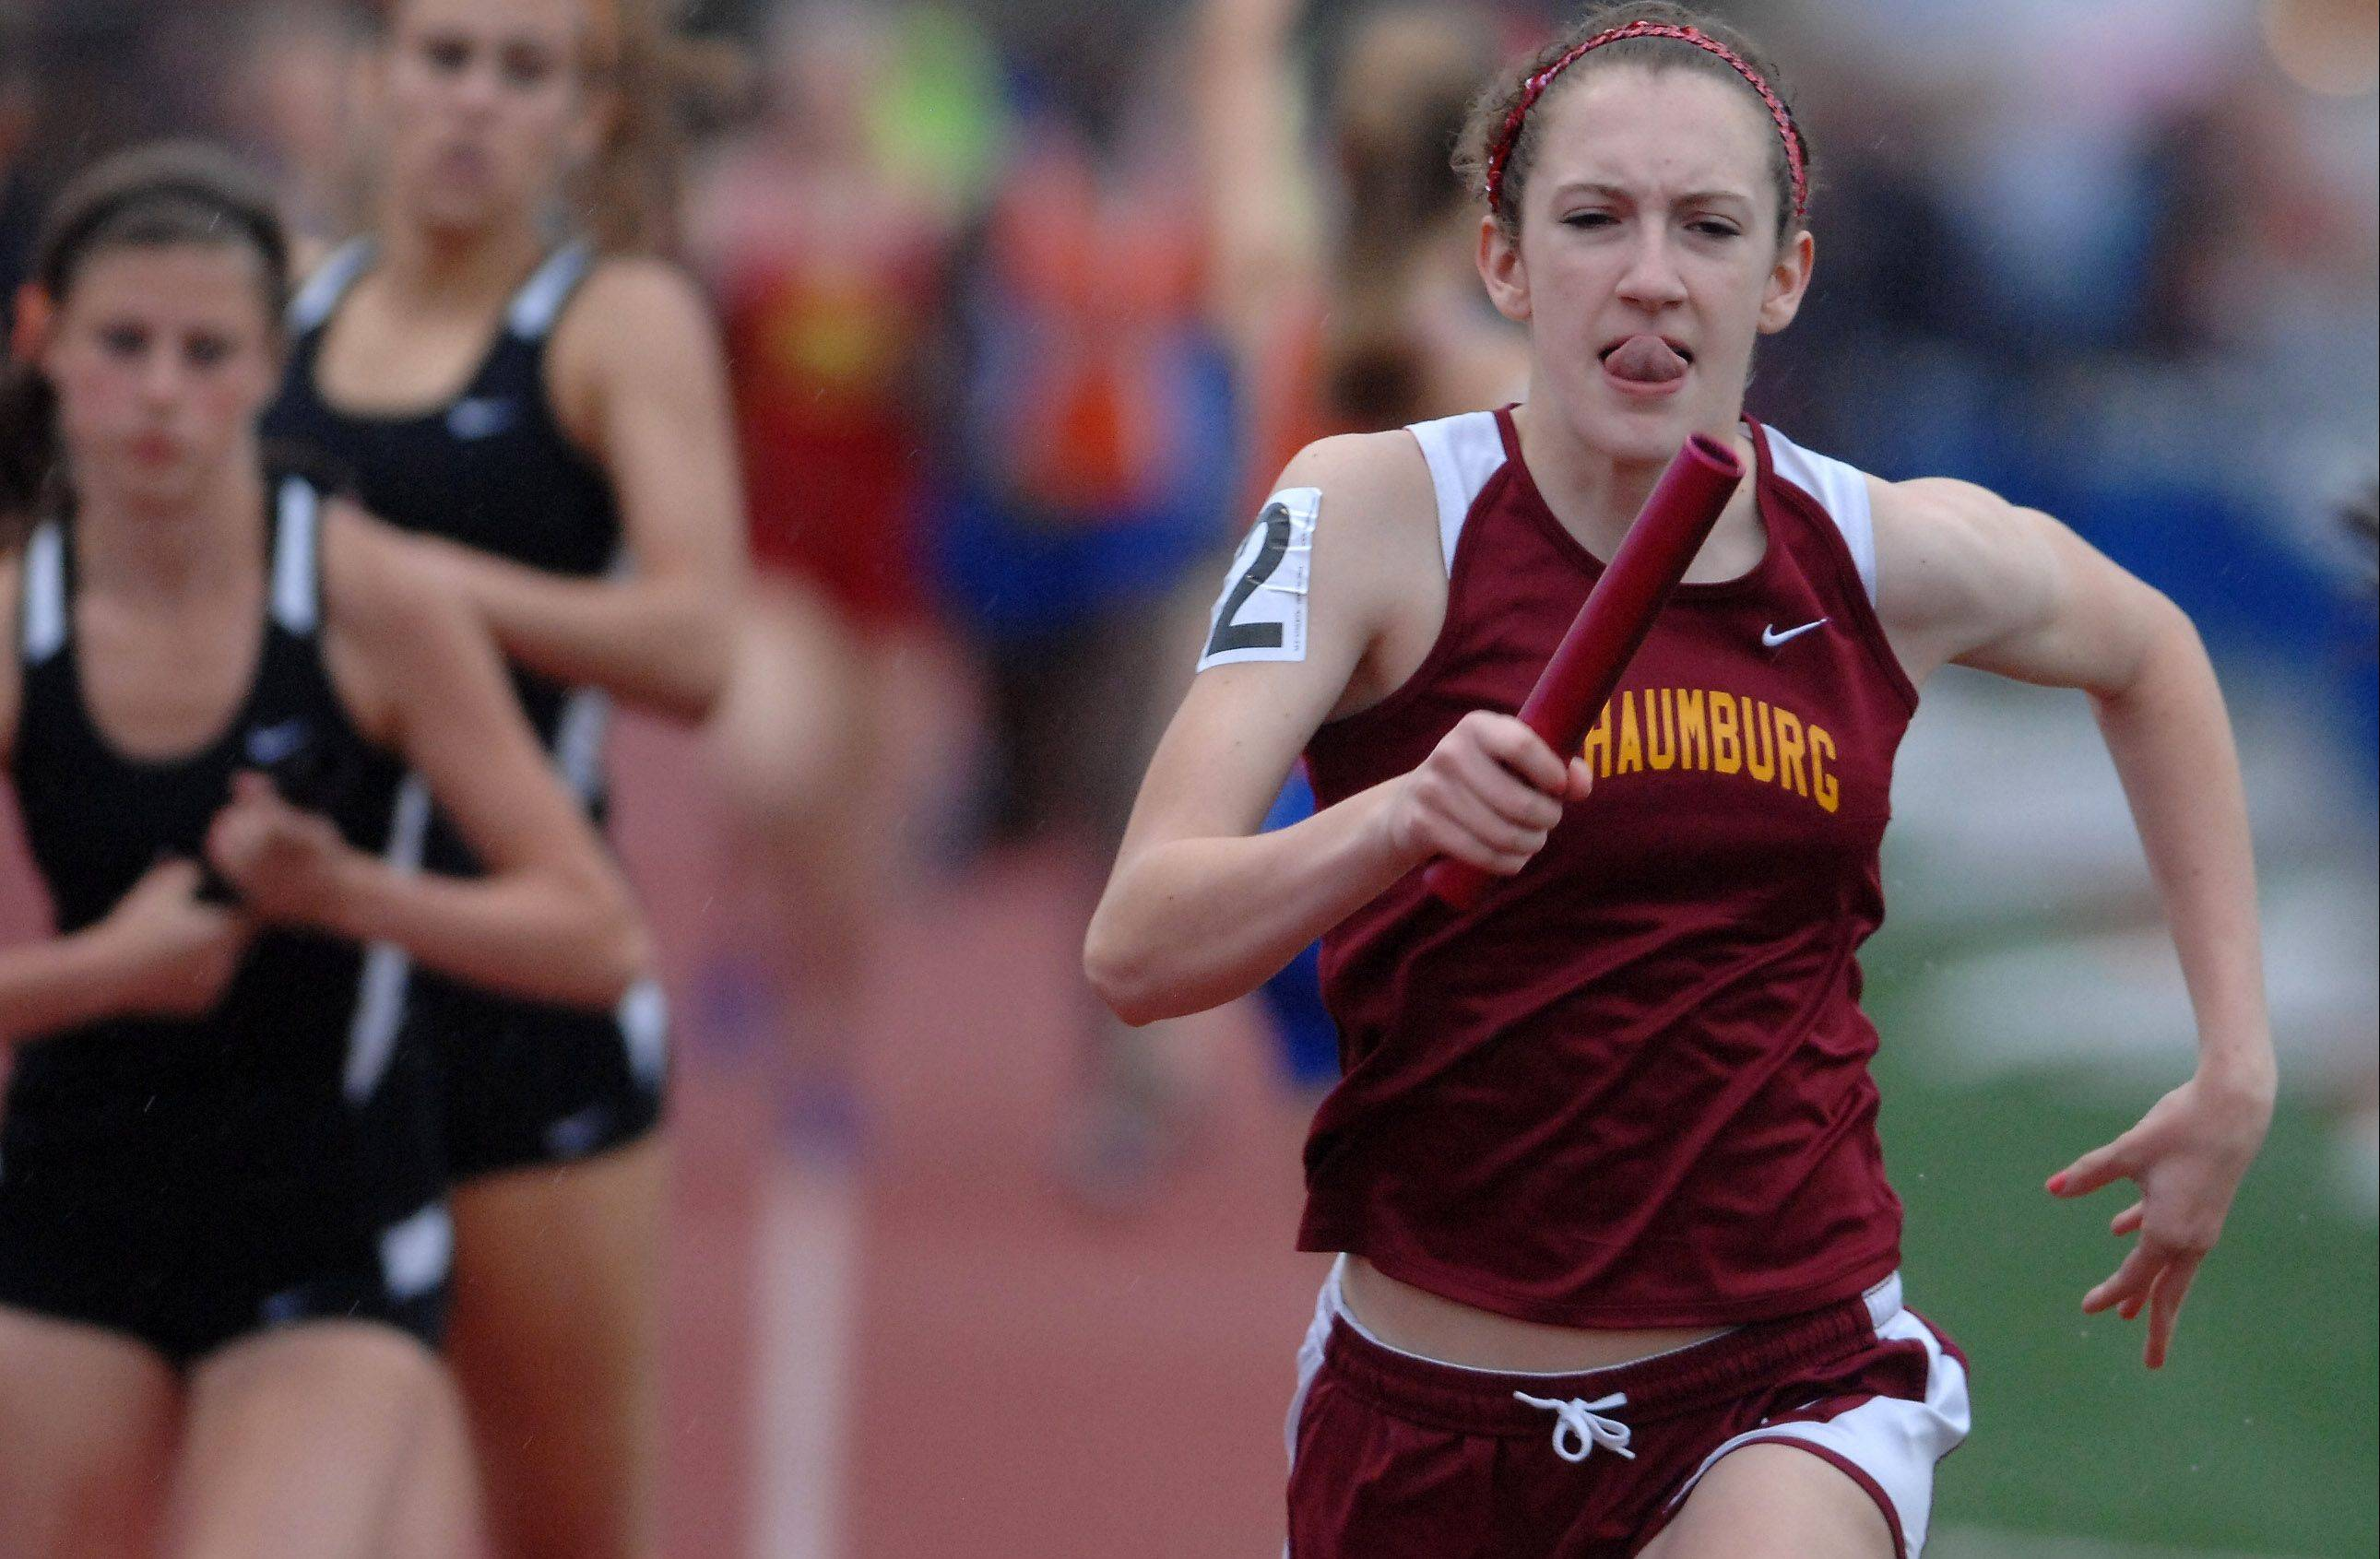 Erin Falsey of Schaumburg runs the anchor leg of the Saxons' state-qualifying 3,200-meter relay during the West Aurora girls track sectional Thursday.